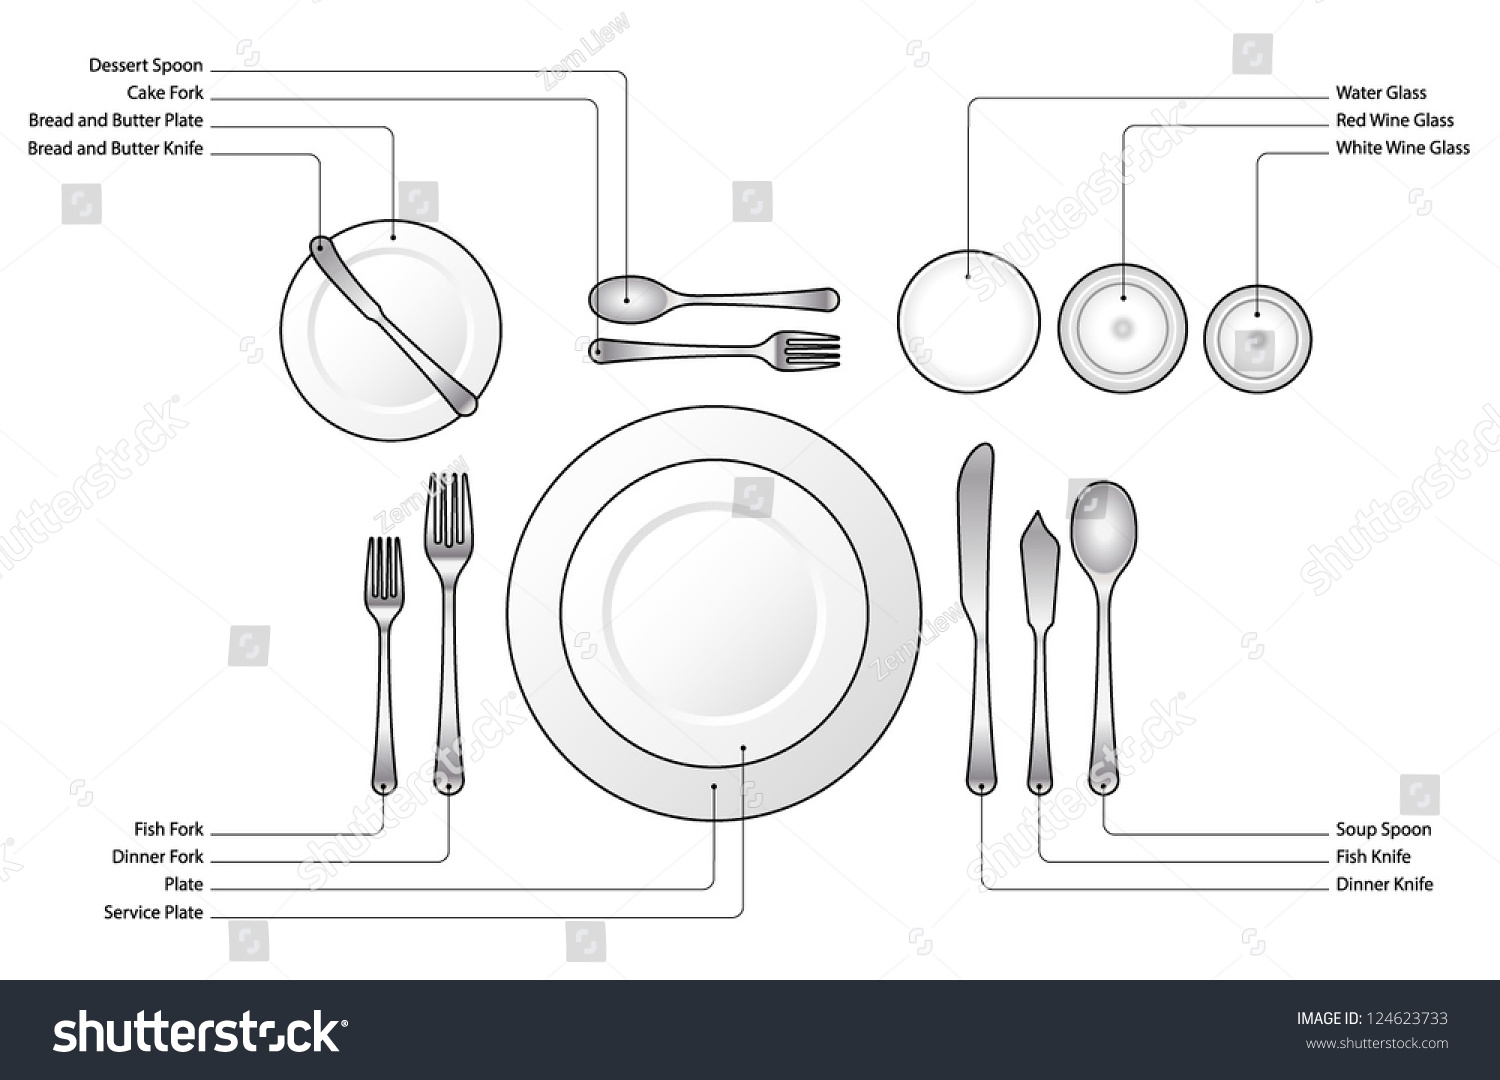 hight resolution of diagram place setting for a formal dinner with soup and fish courses with text